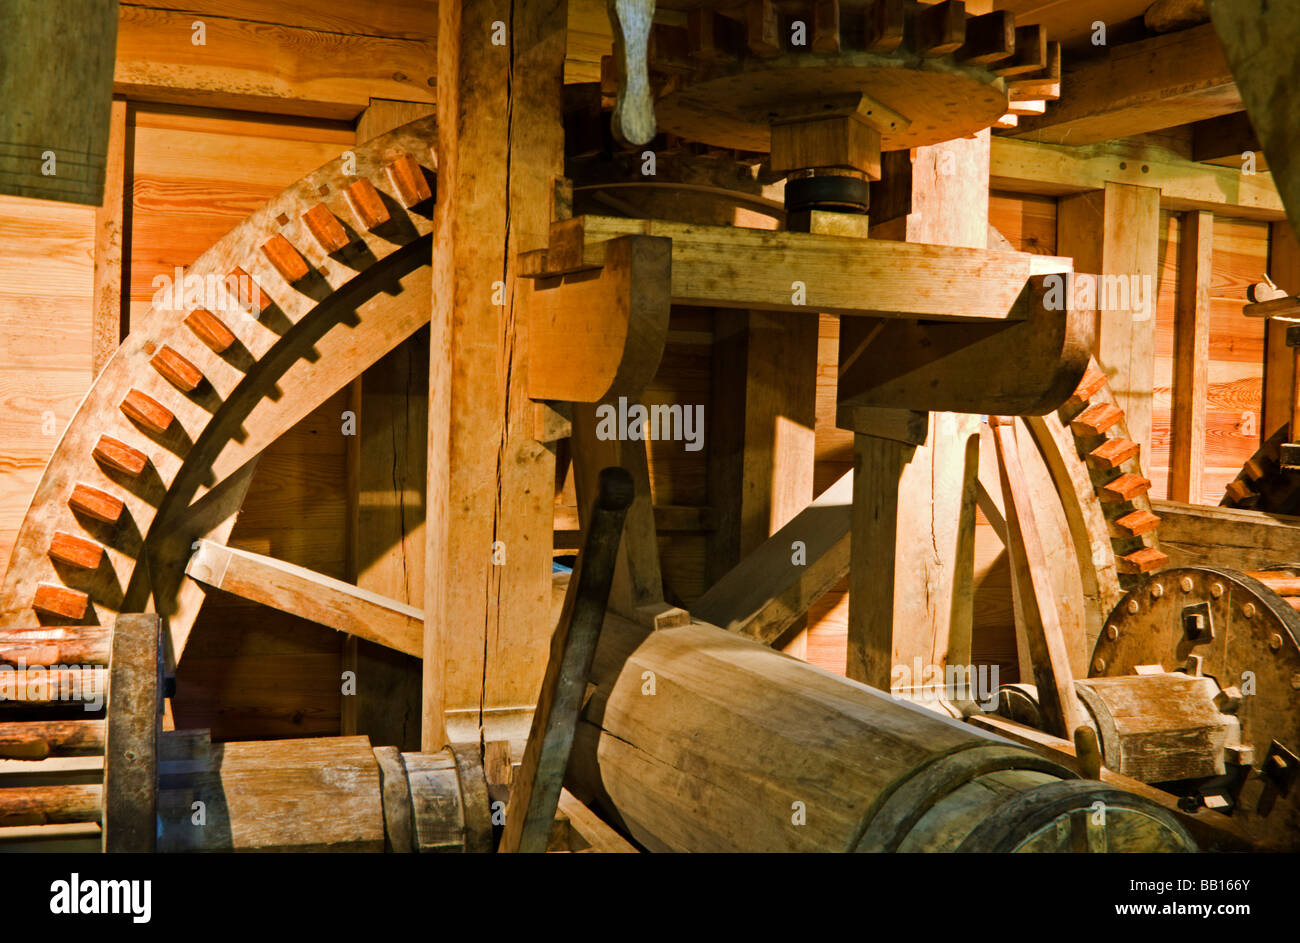 The wooden gears of the historic George Washington Grist Mill, circa 1800. - Stock Image